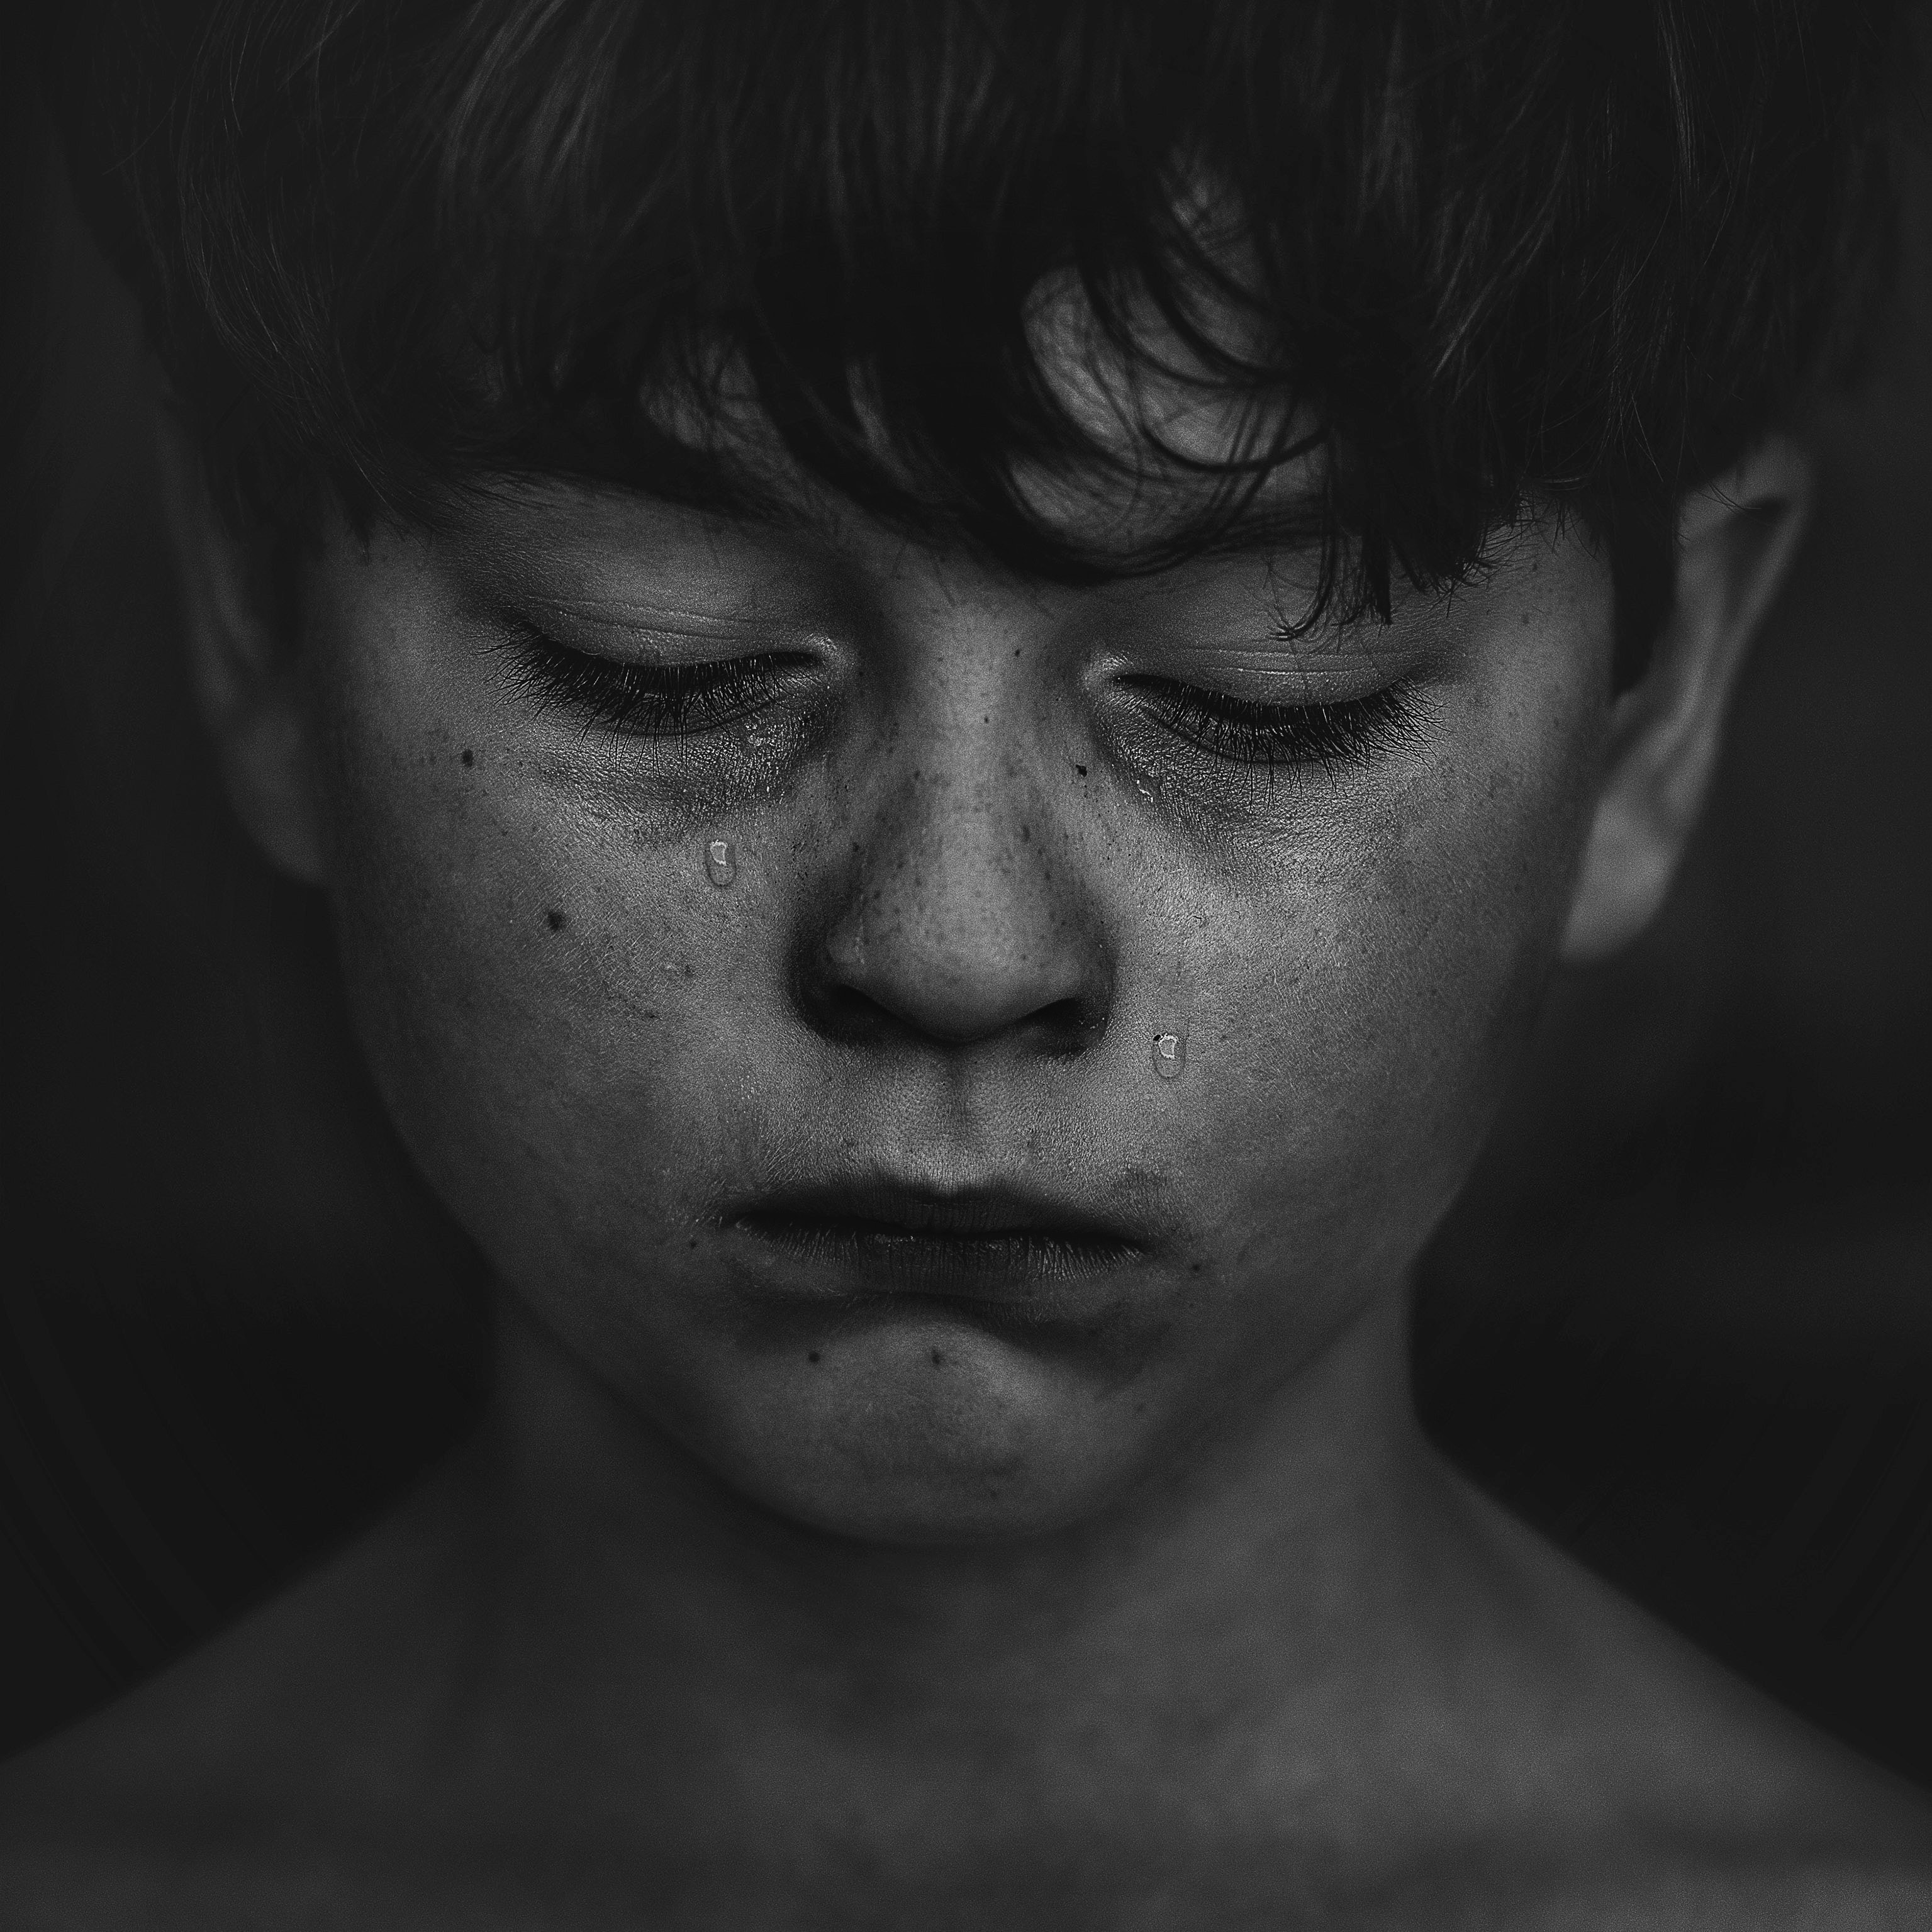 Grayscale photo of boy crying